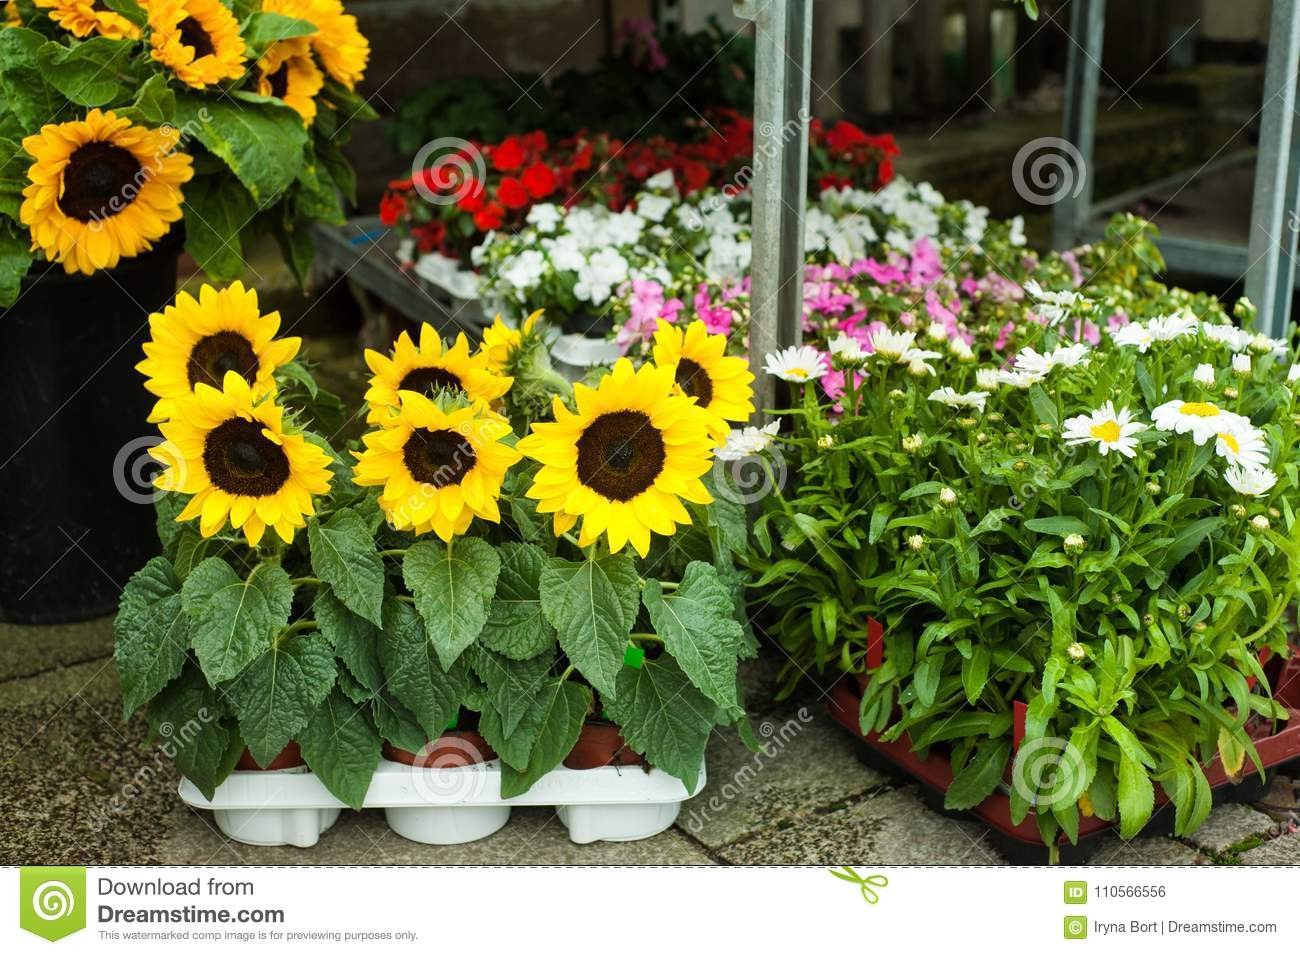 Sunflowers and daisies in flower shop stock photo image of daisy sunflowers and daisies in flower shop stock photo image of daisy bunch 110566556 izmirmasajfo